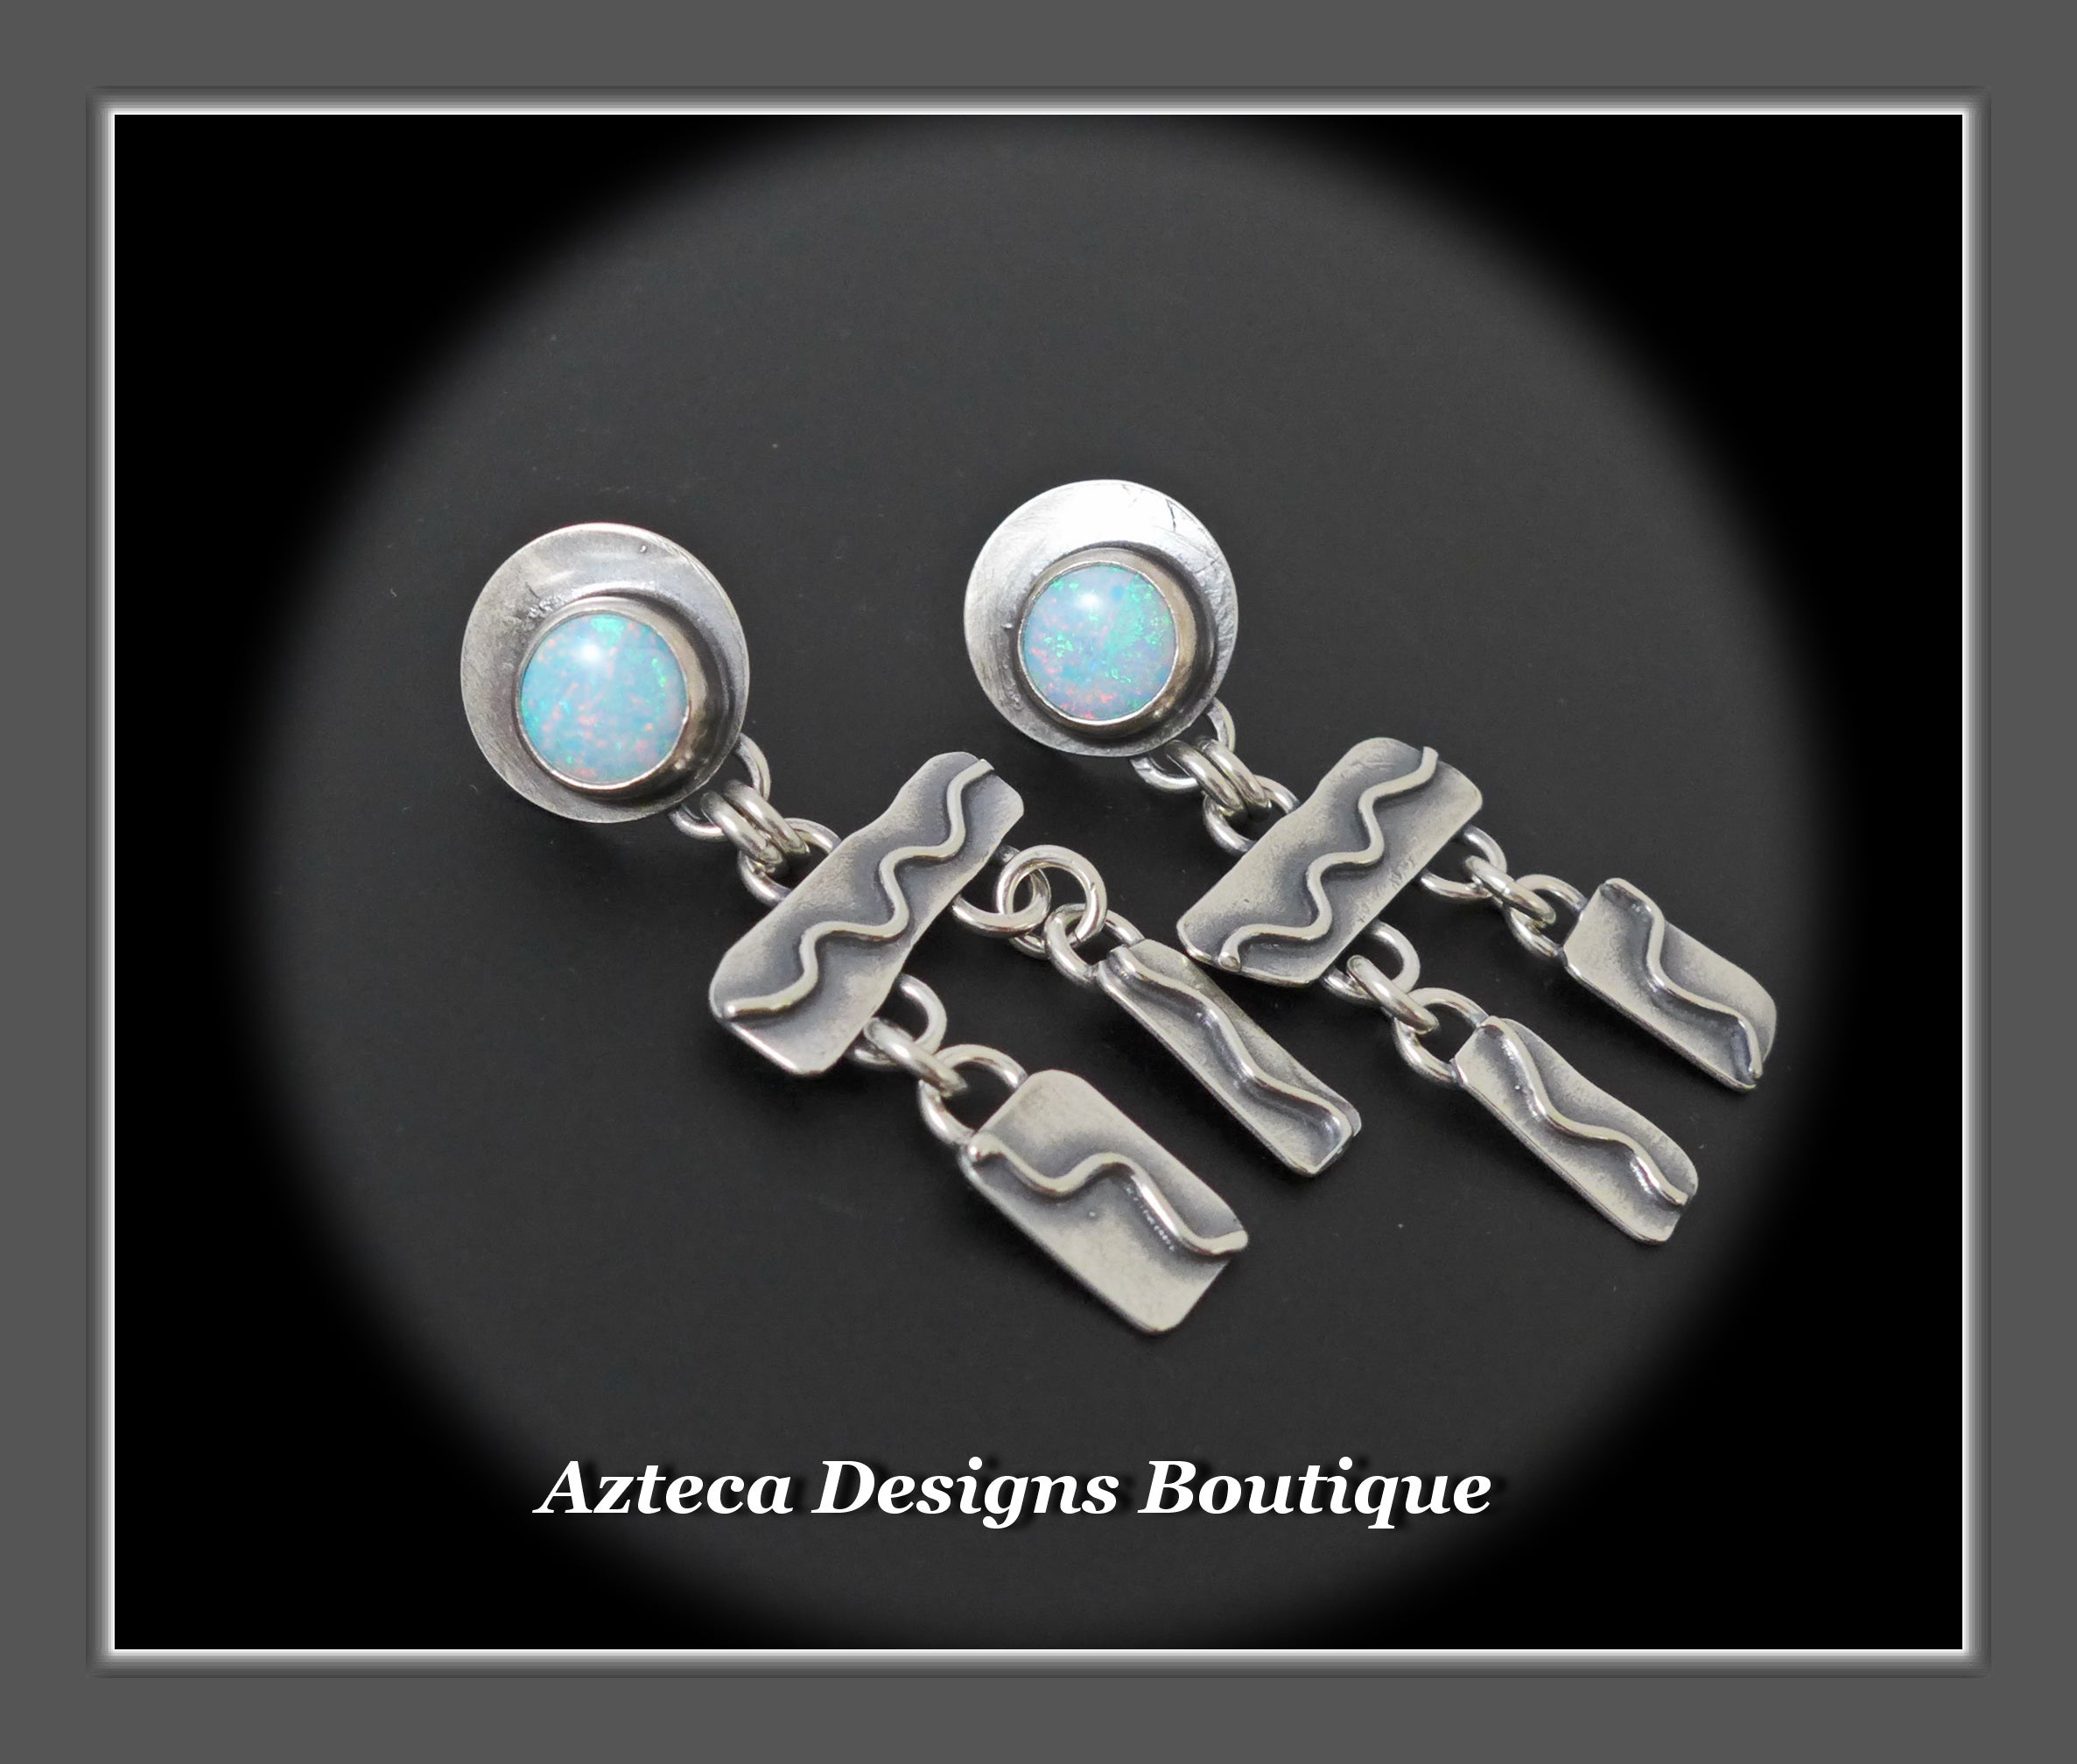 Desert Wind+Cultured Sterling Opal+Sterling Silver Hand Fabricated Post Earrings